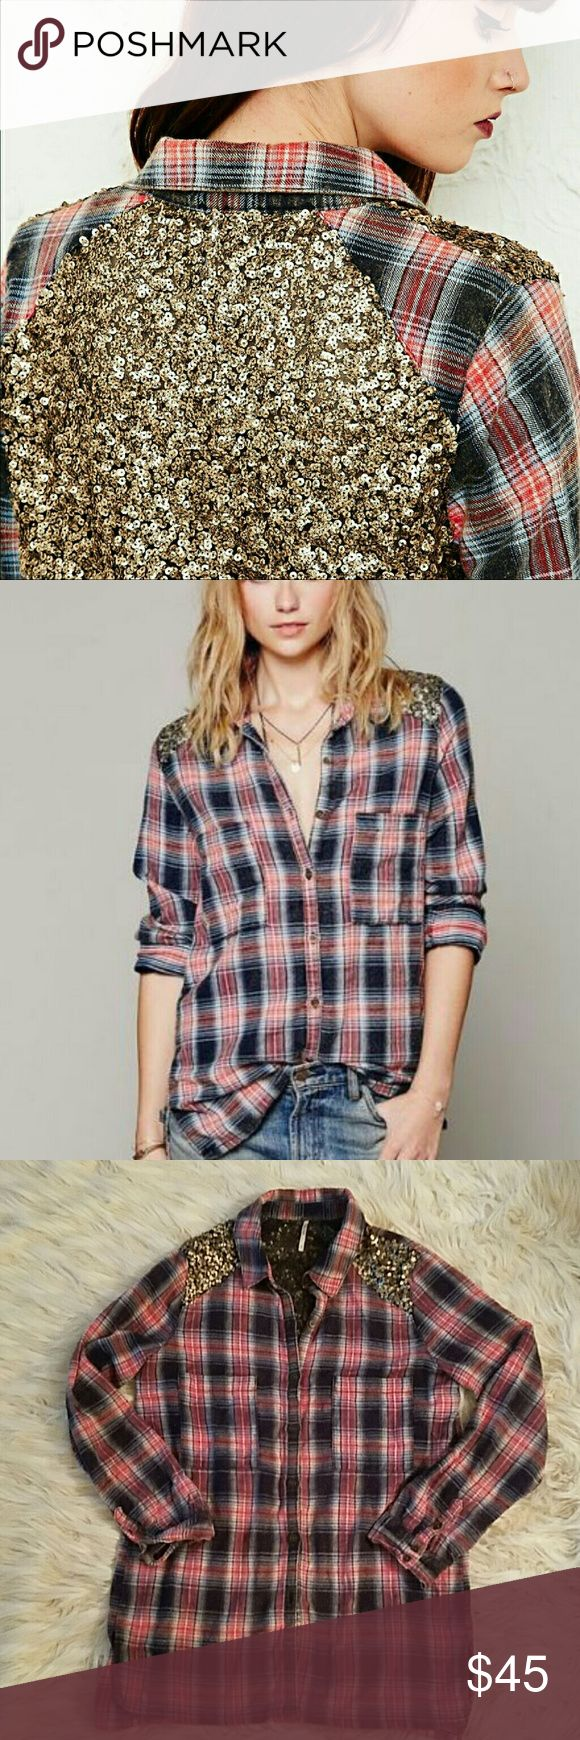 Free people sequin flannel *GUC *Sequins on the back & shoulders *100% Cotton & super soft material *Relaxed fit, looks great worn like how the second picture shows it or tied in the front with a cute tshirt or tank under it ❤ *Would also look great on a cool summer night with shorts & cowboy boots!! Free People Tops Button Down Shirts